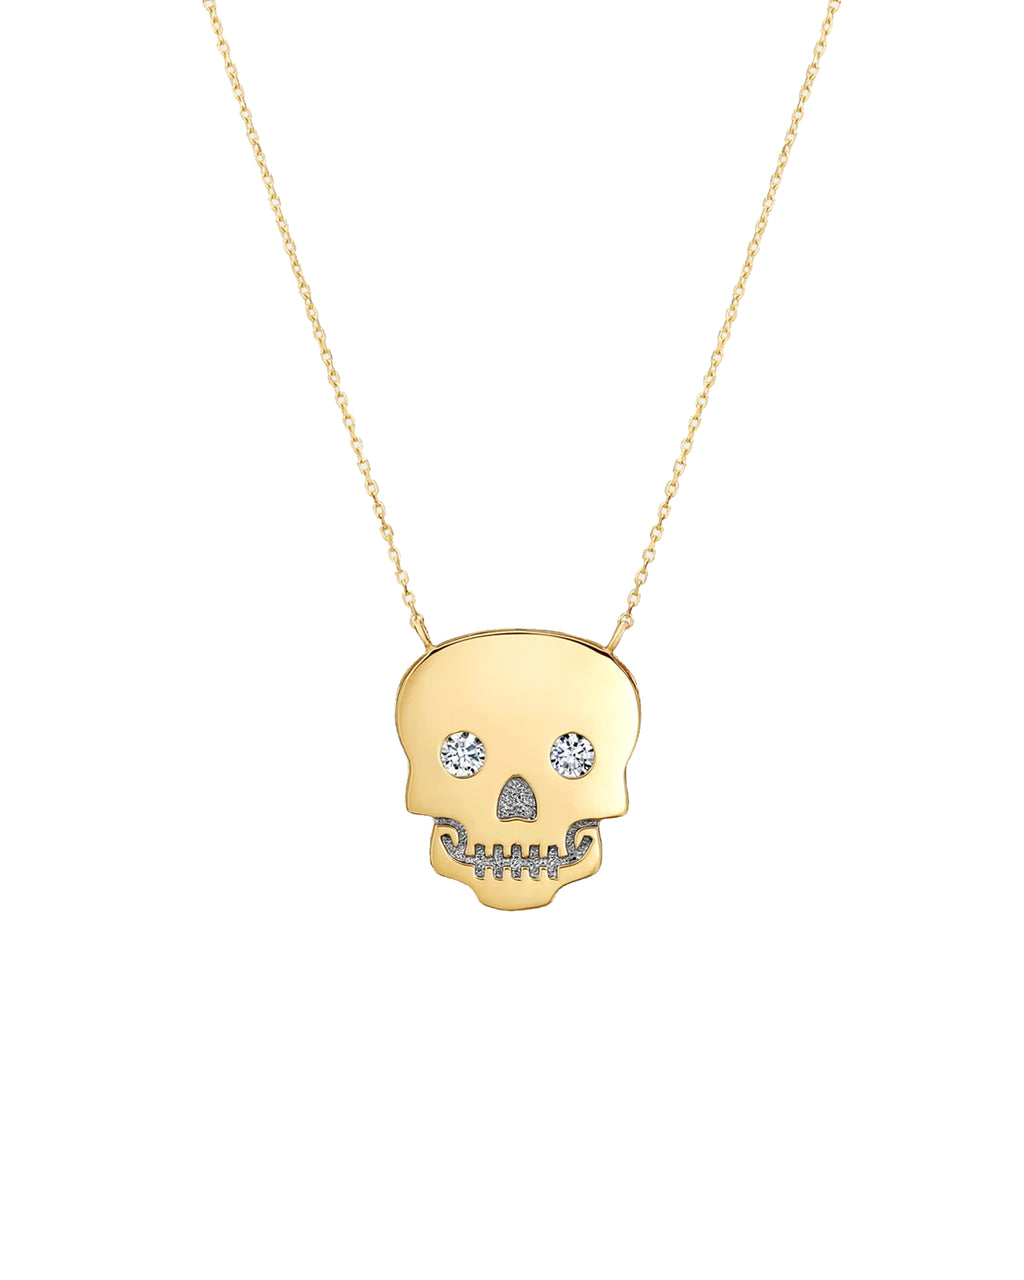 NM10007 - 14k Sparkle Eye Skull Necklace - accessories - fine jewelry - Hanging from an 18 inch chain is a 14-karat solid yellow gold skull, which is embellished with cubic zirconia for an extra touch. Perfect as a stand-alone piece or when layered.